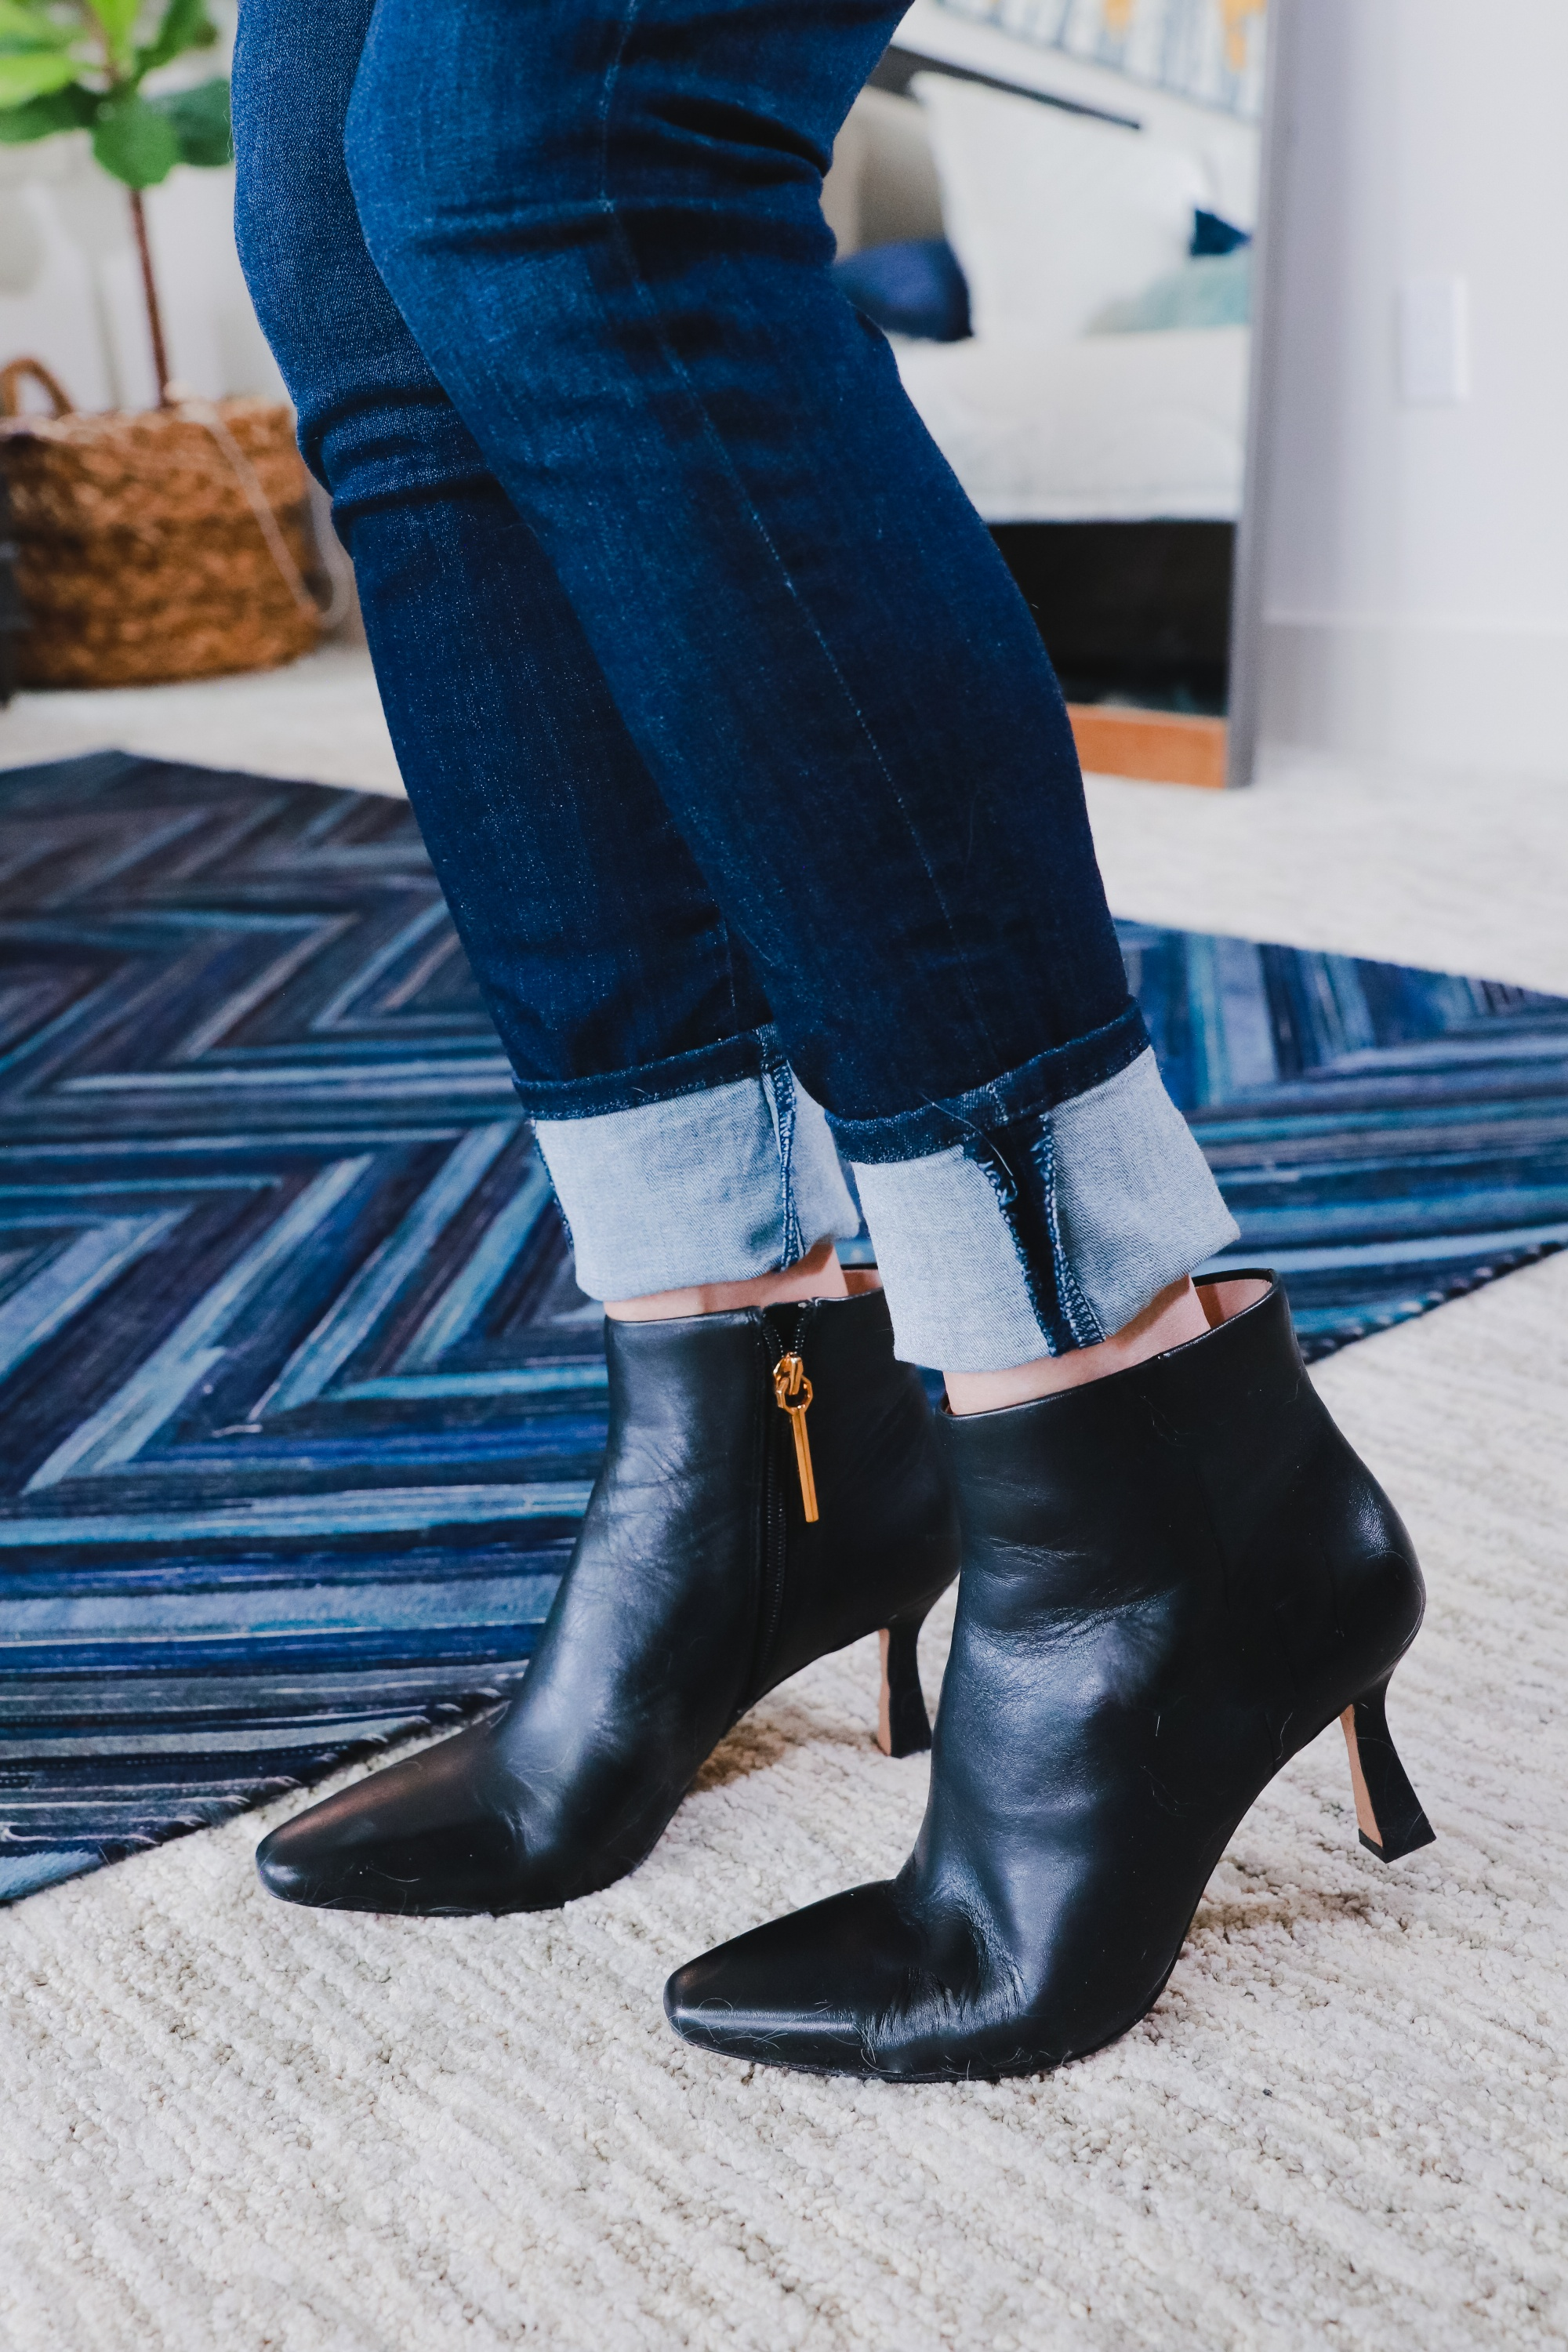 how to cuff skinny or straight leg jeans to wear with ankle booties, fashion blogger wearing black ankle boots with straight leg blue jeans